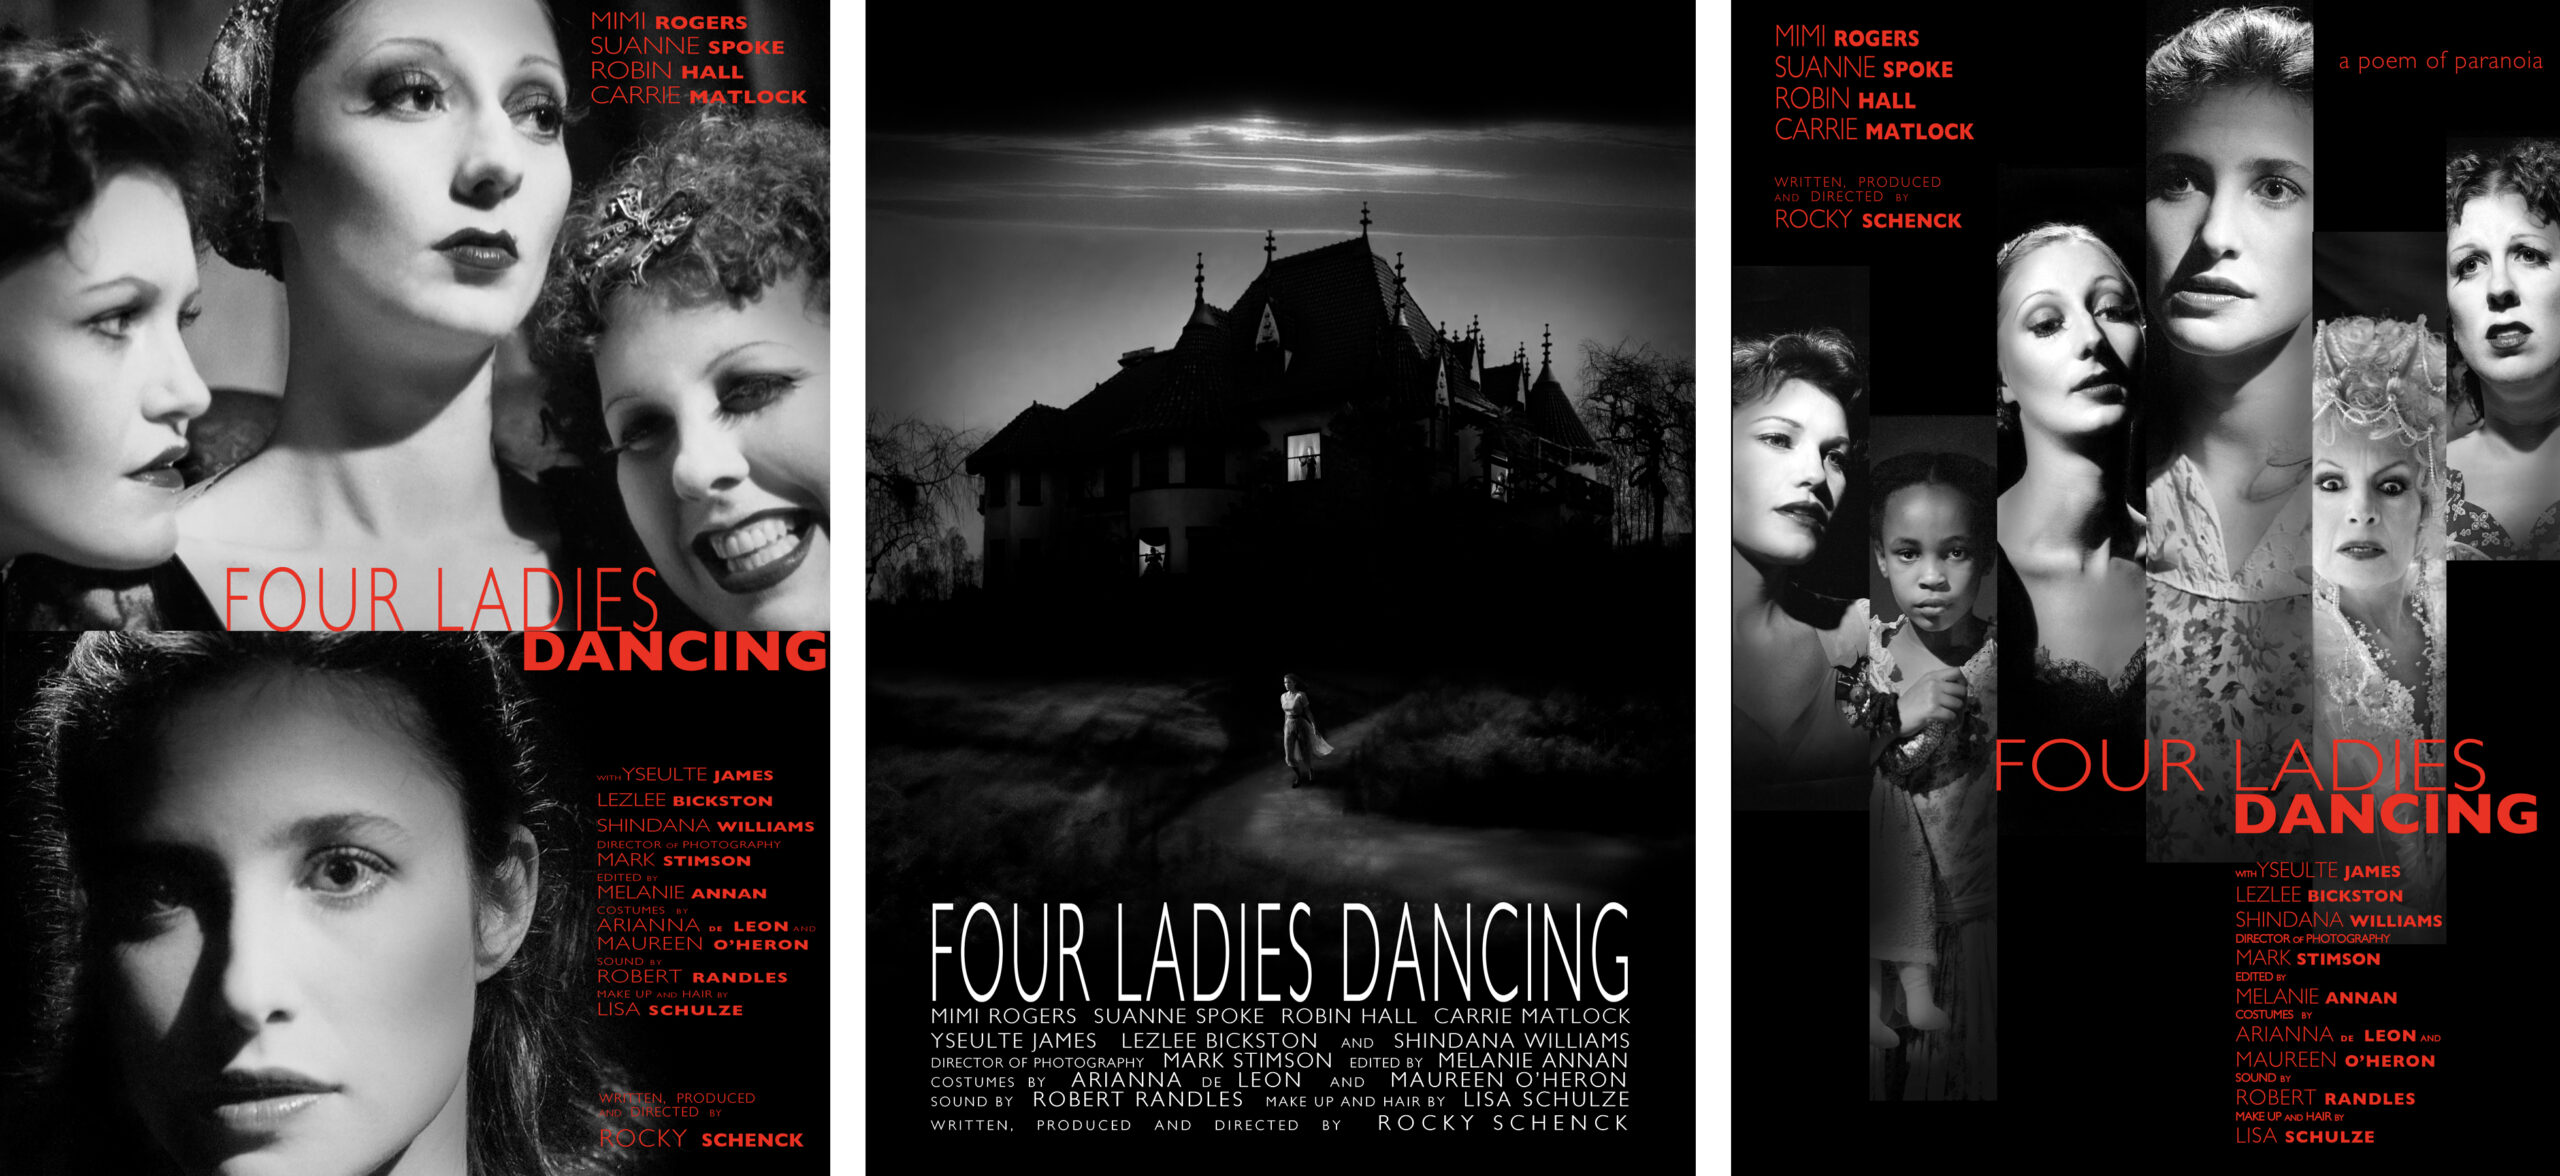 Four Ladies Dancing, a feature film written, produced, and directed by Rocky Schenck, starring Mimi Rogers, Suanne Spoke, Robin Hall, and Carrie Matlock.  Cinematography by Mark Stimson.  Edited by Melanie Annan.